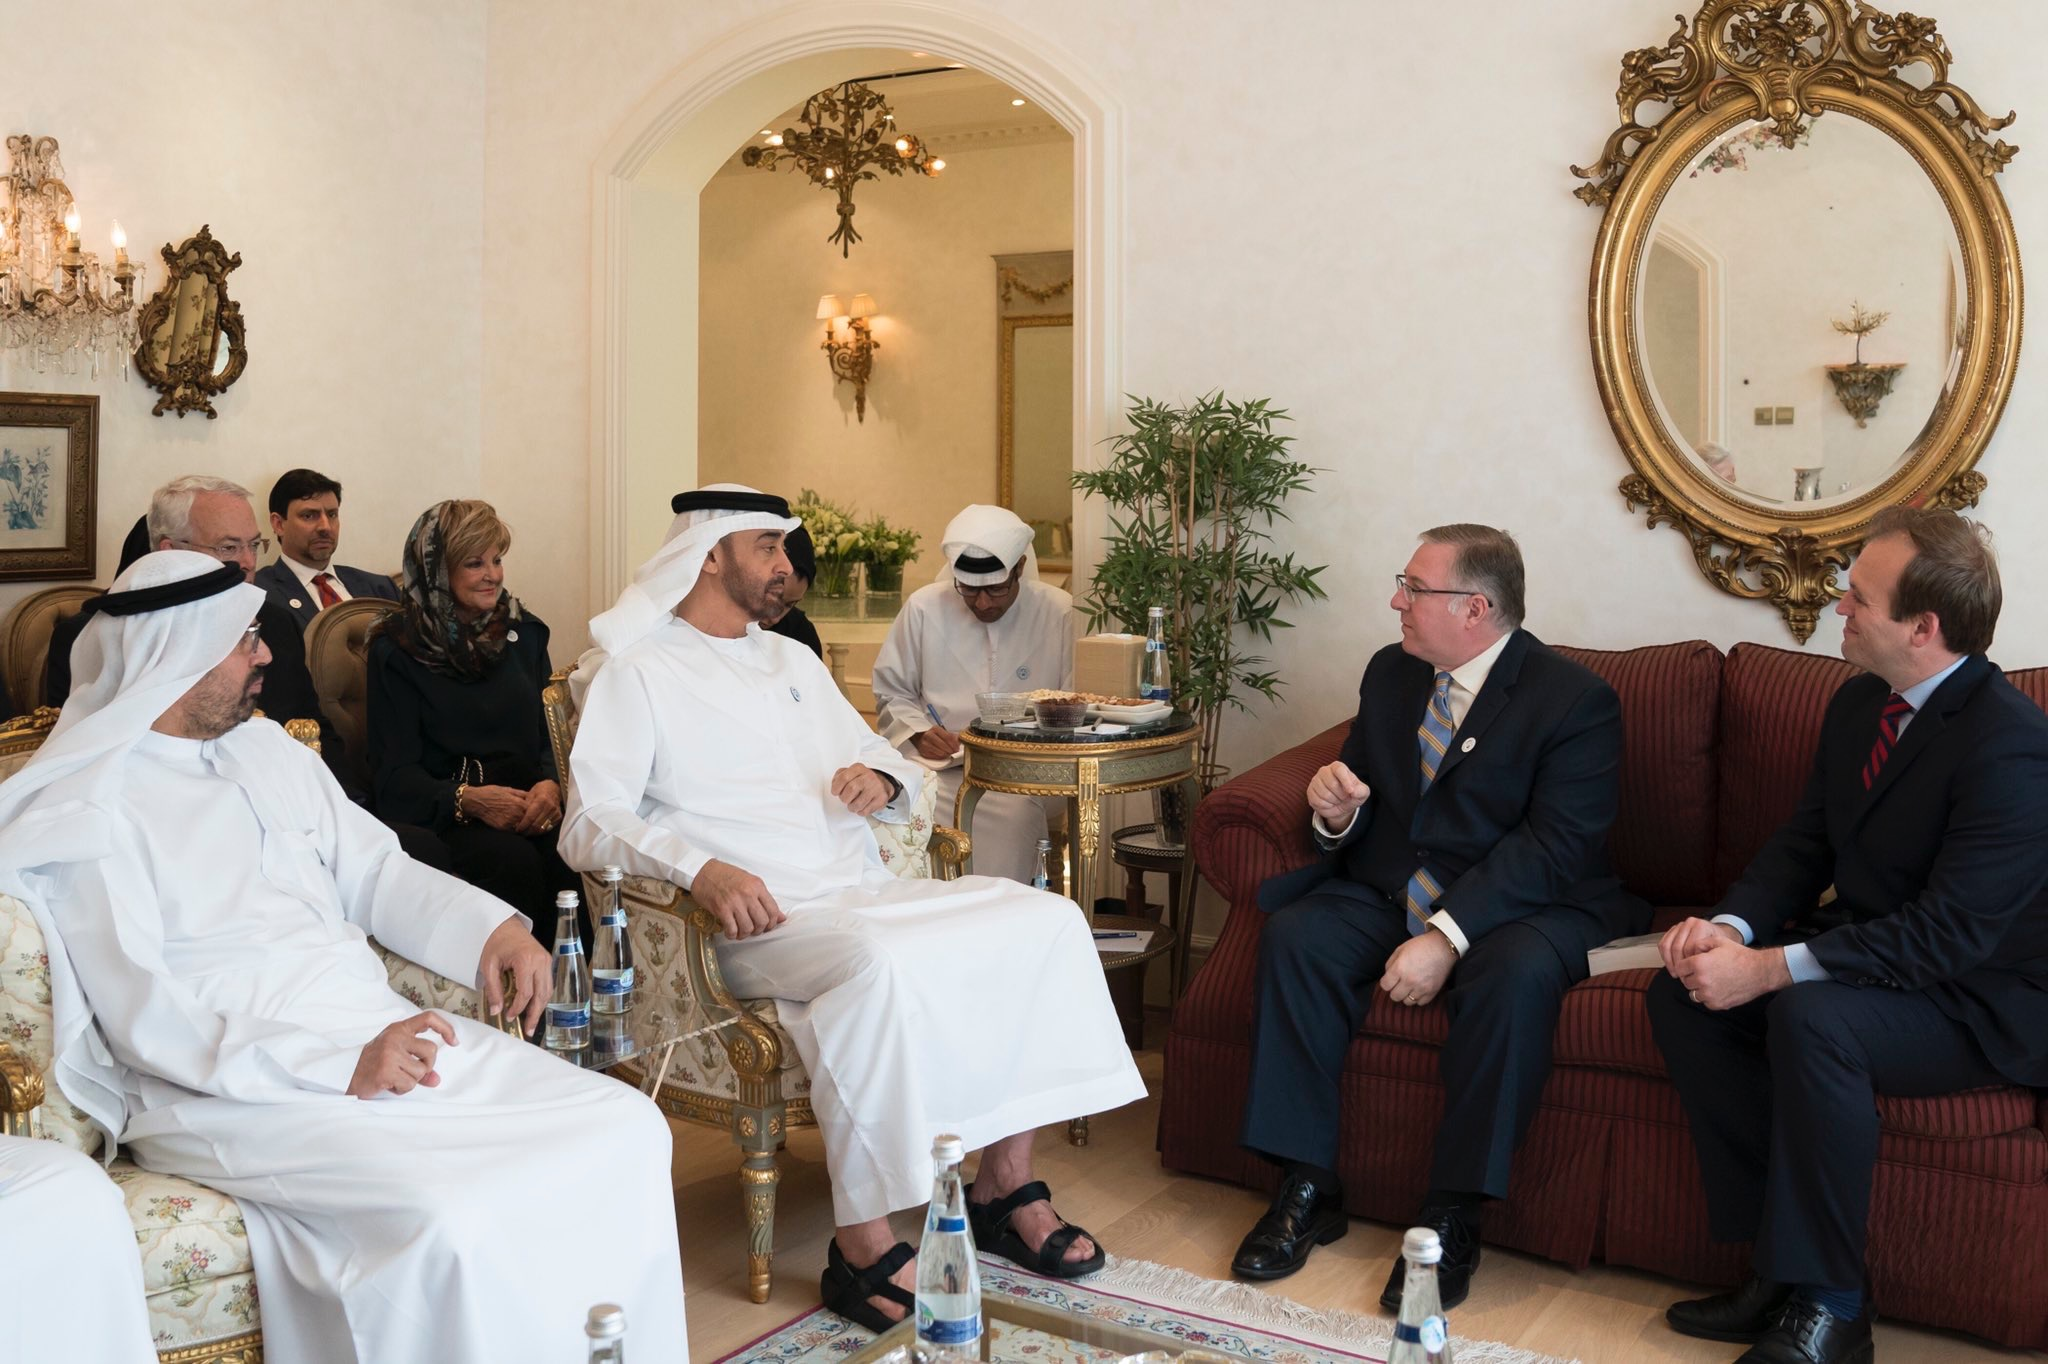 His Highness Sheikh Mohamed bin Zayed Al Nahyan, Crown Prince of Abu Dhabi (center), welcomes a delegation of American Evangelicals, including Joel C. Rosenberg (on couch, left) and Rev. Johnnie Moore (on couch, right), into his home.